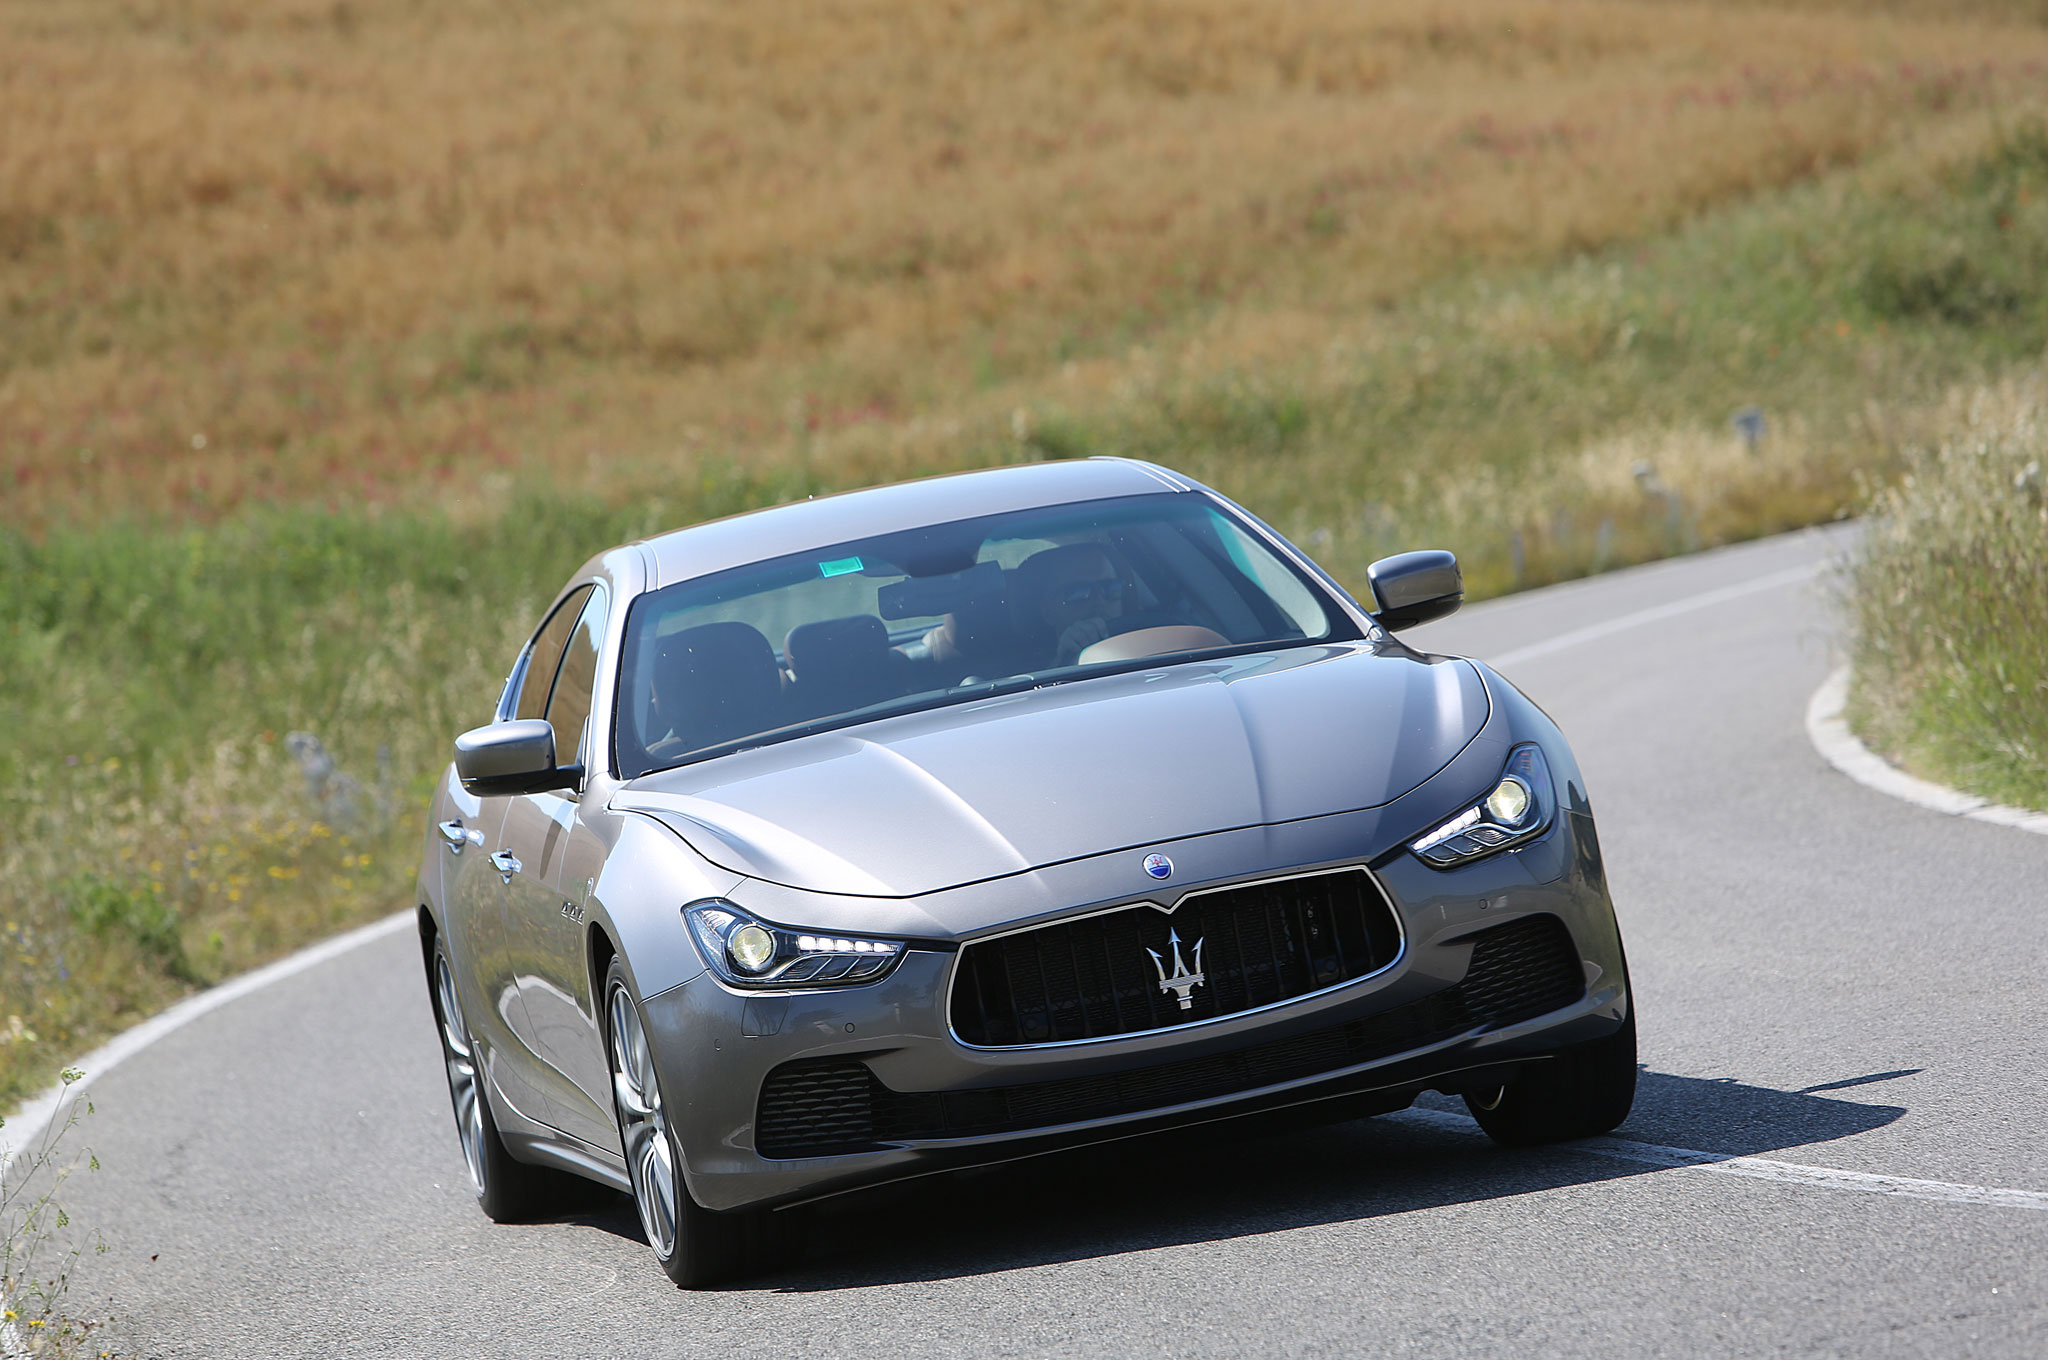 2014 Maserati Ghibli Named IIHS Top Safety Pick, Priced From $66,850